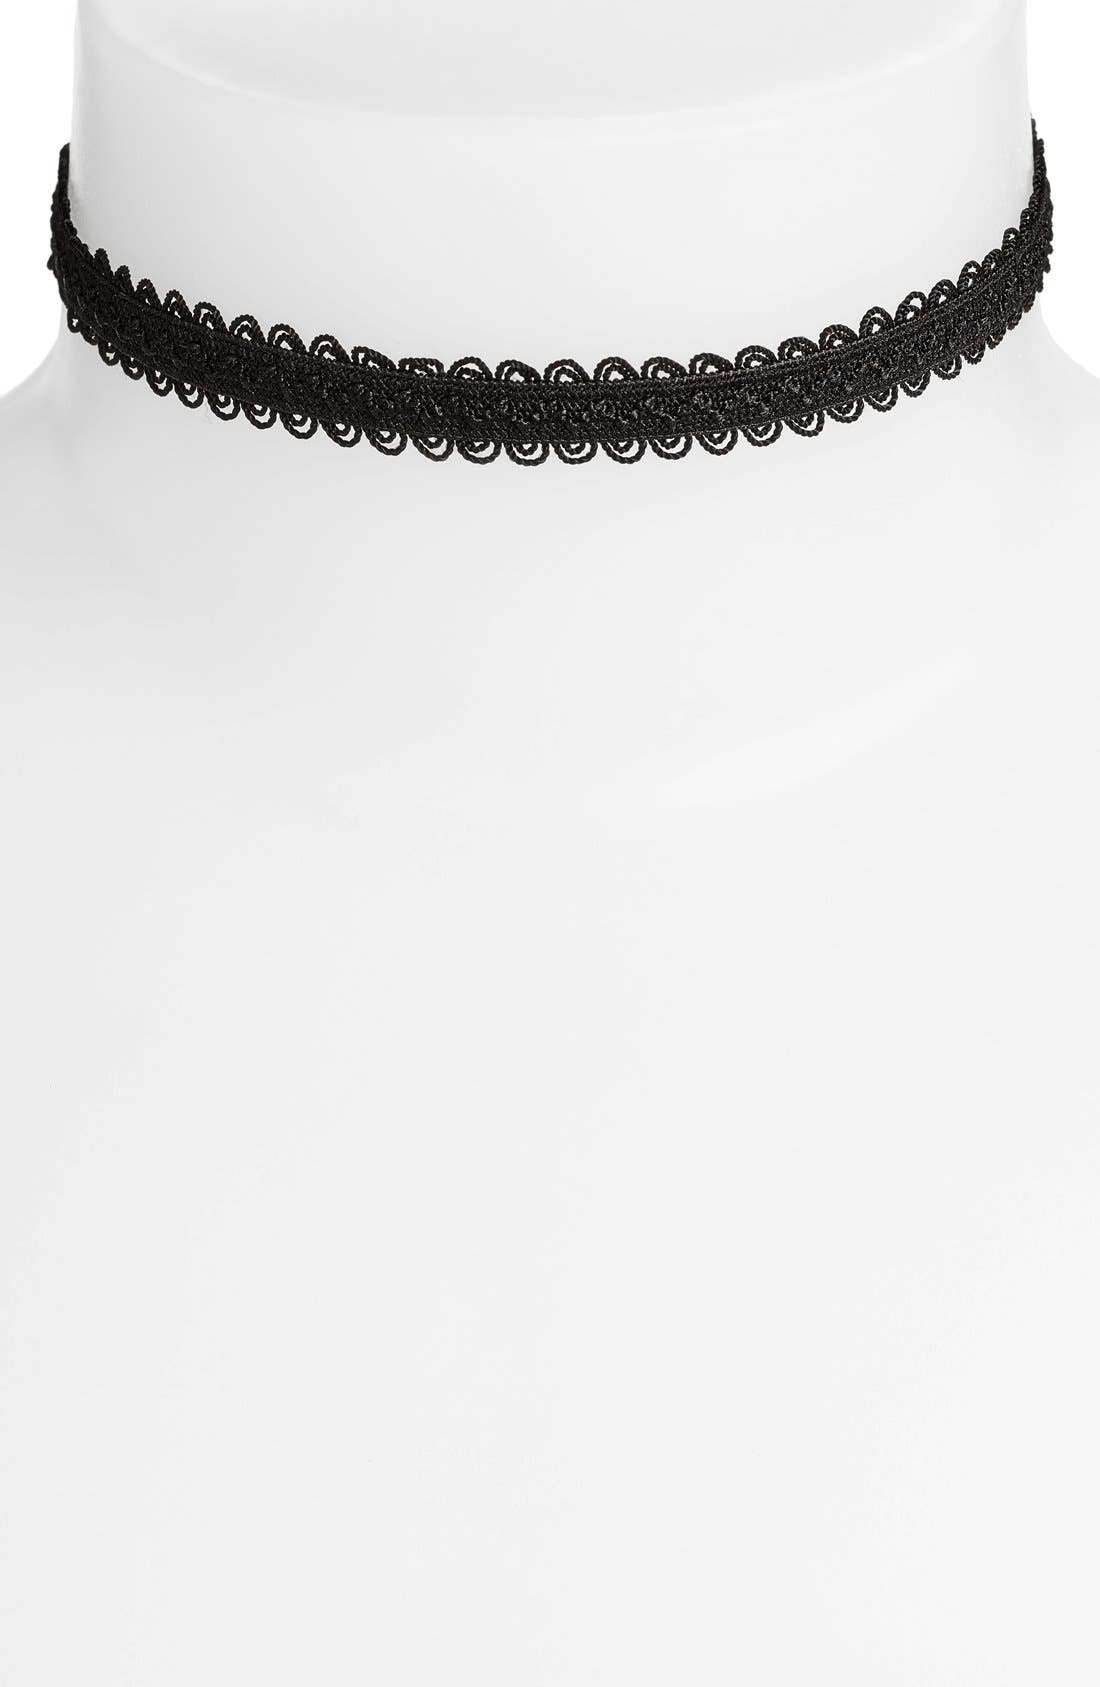 Main Image - Vanessa Mooney Black Lace Choker